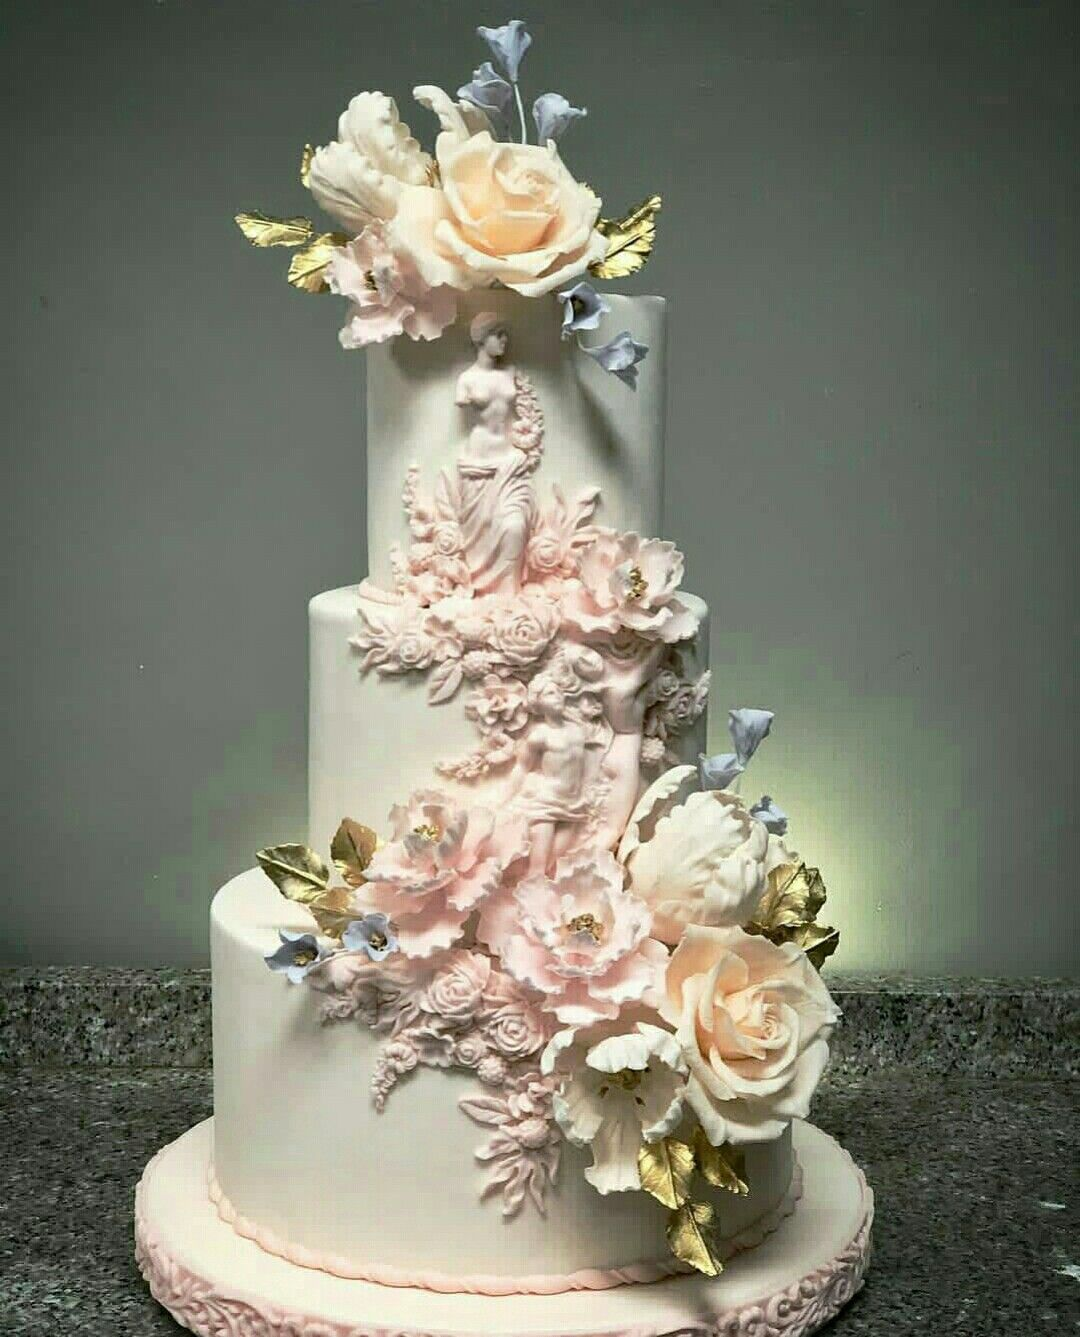 The Most Amazing Wedding Cakes Of 2013: Pin By Carleysdelights On Cake